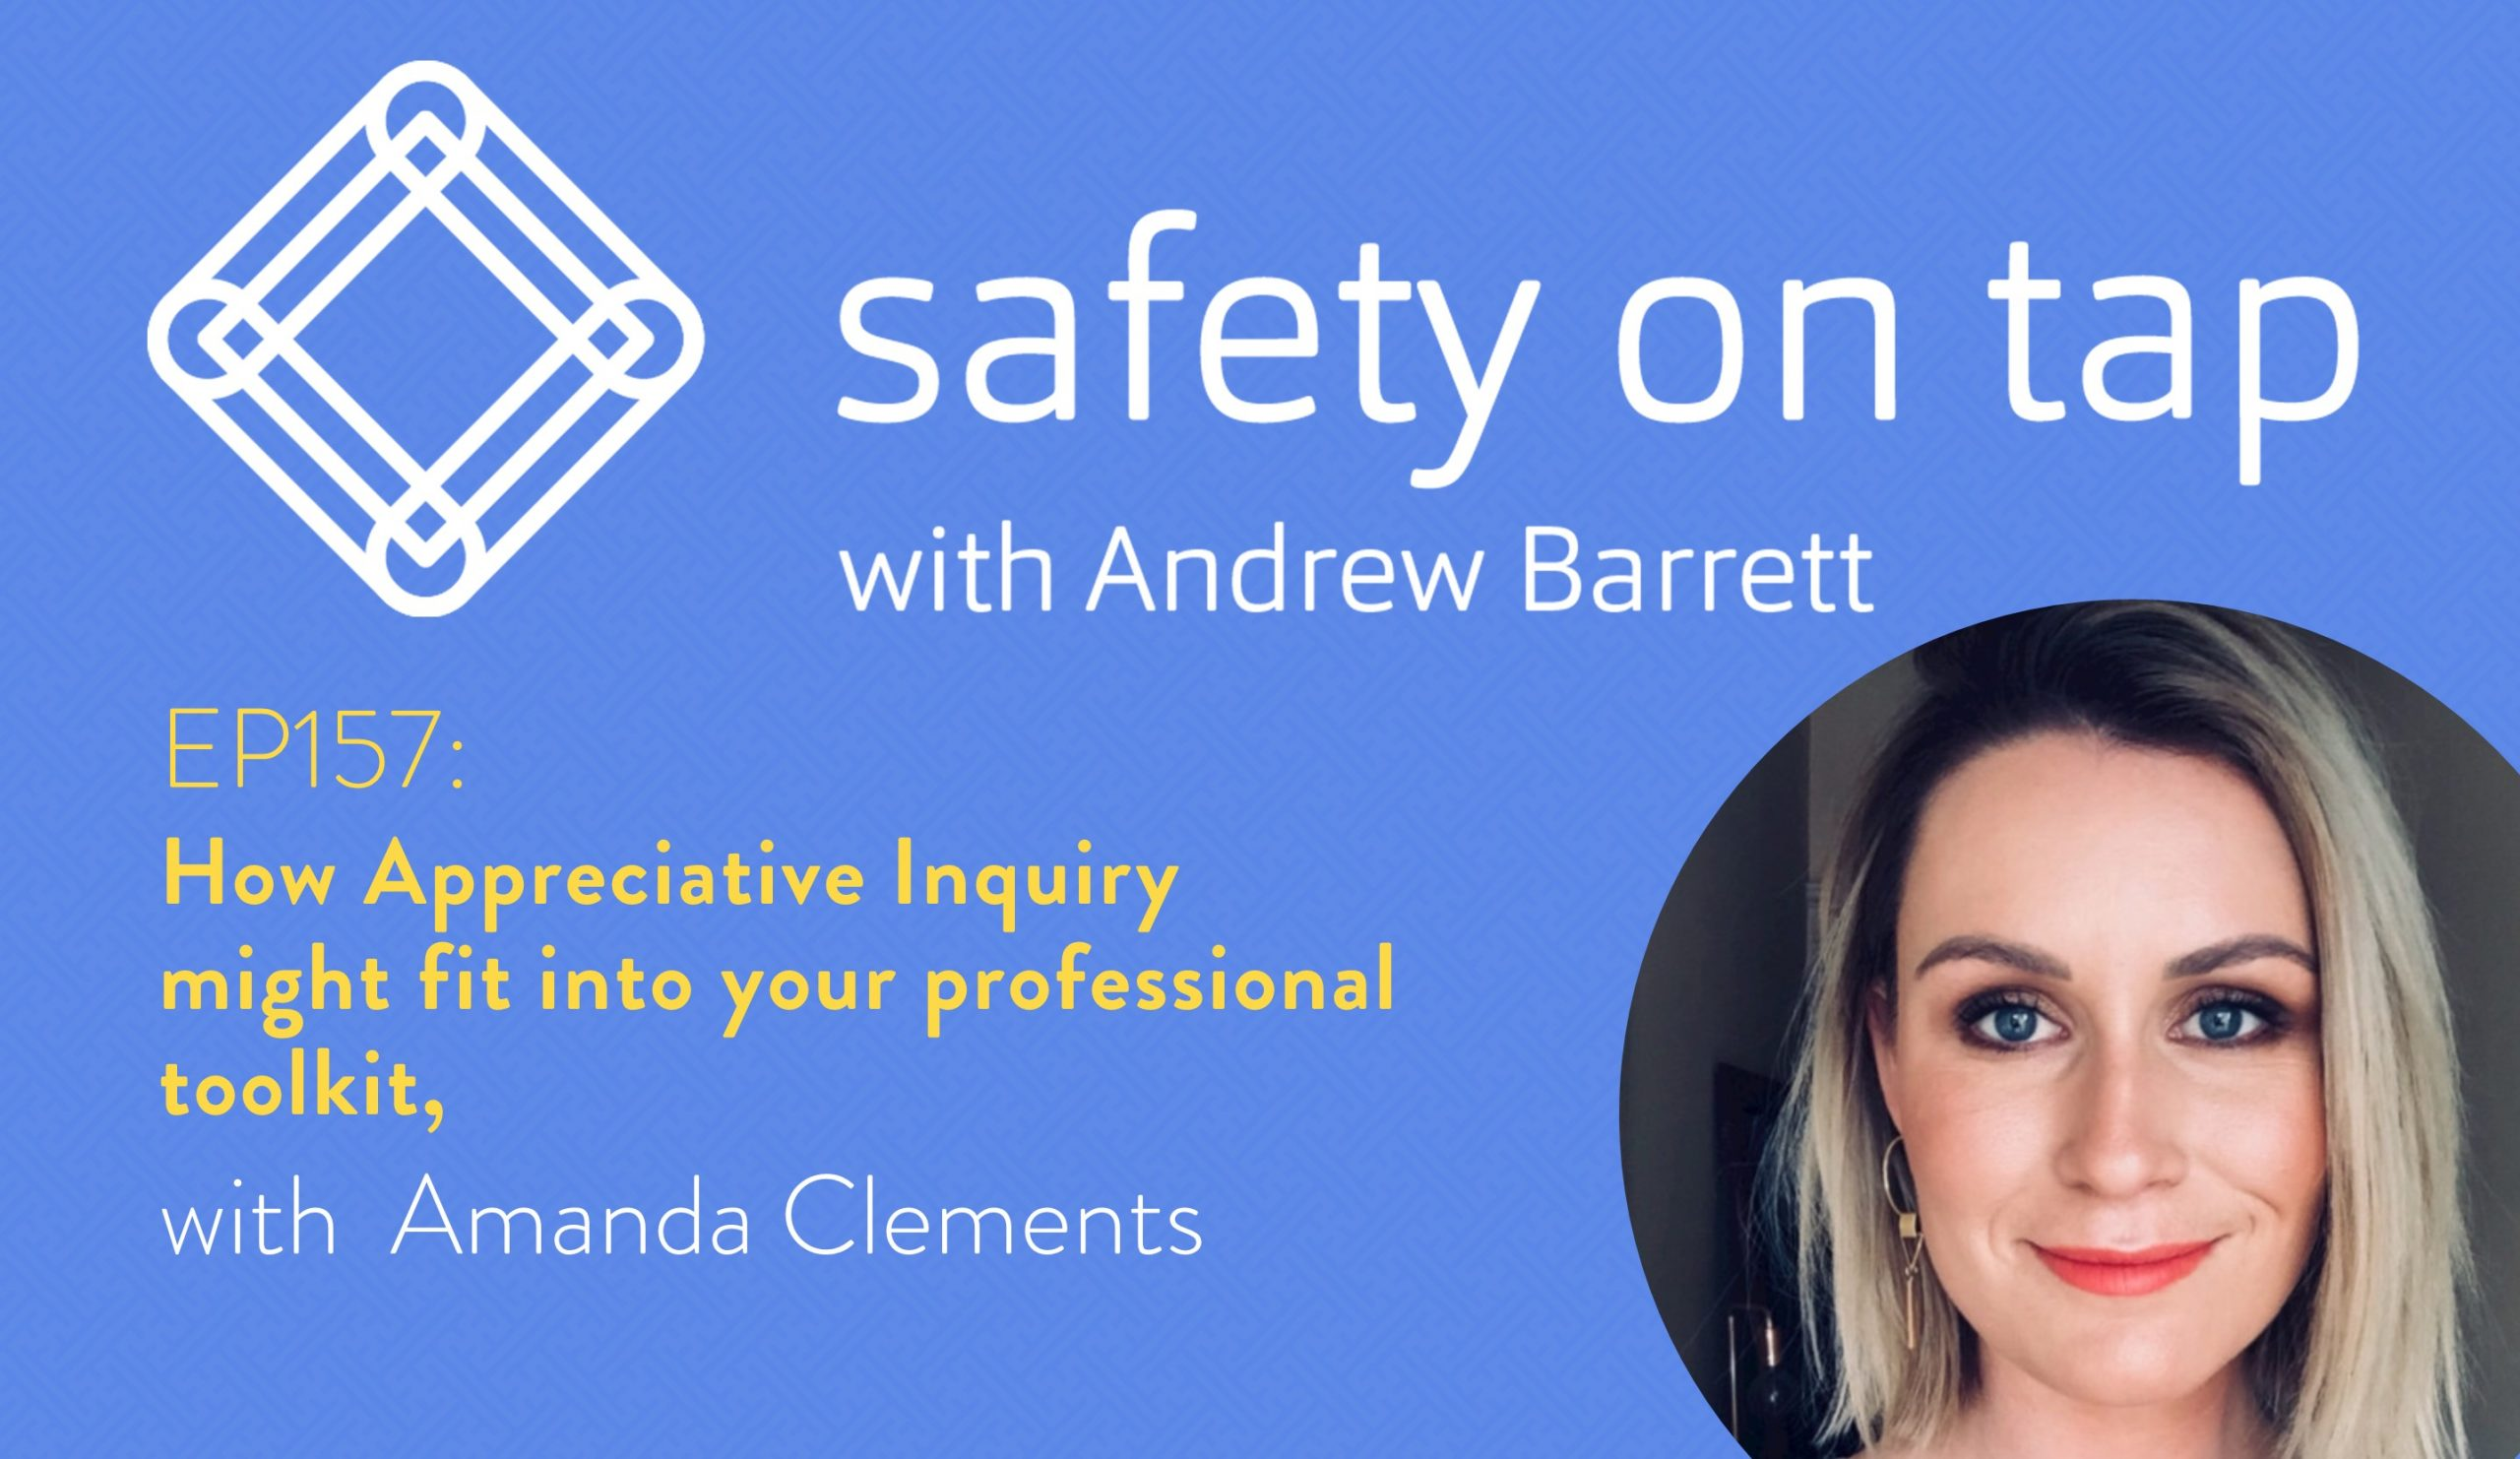 Ep157: How Appreciative Inquiry might fit into your professional toolkit, with Amanda Clements